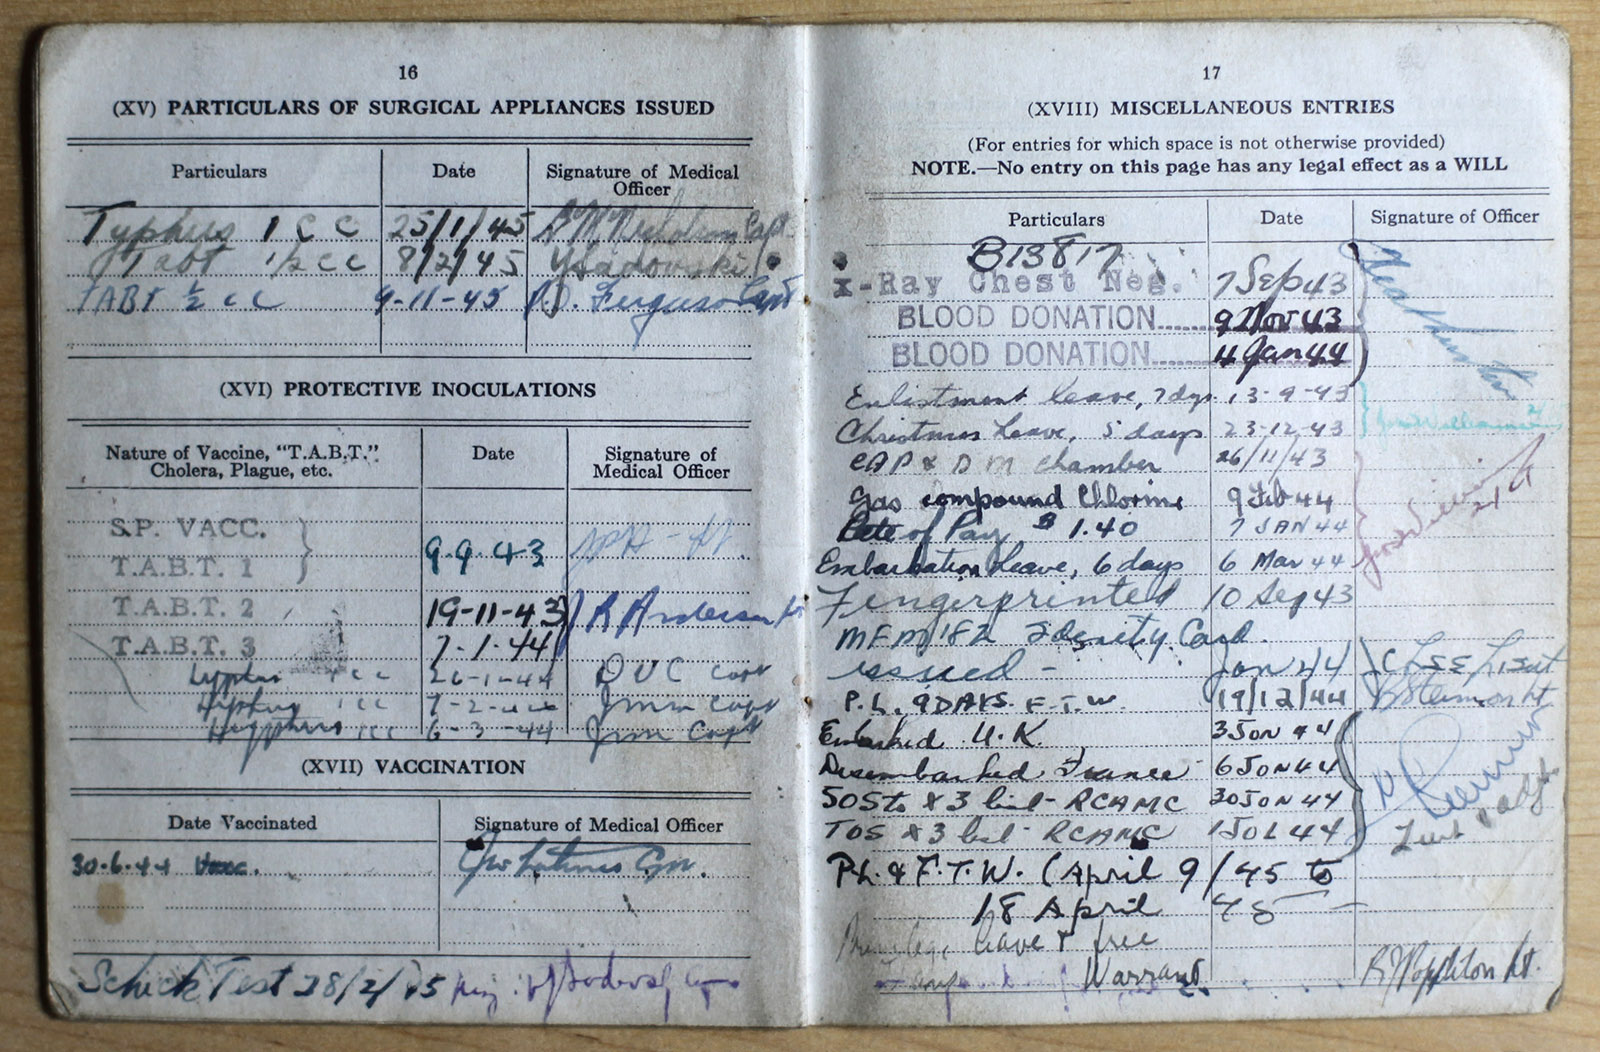 ww2 soldier's service book